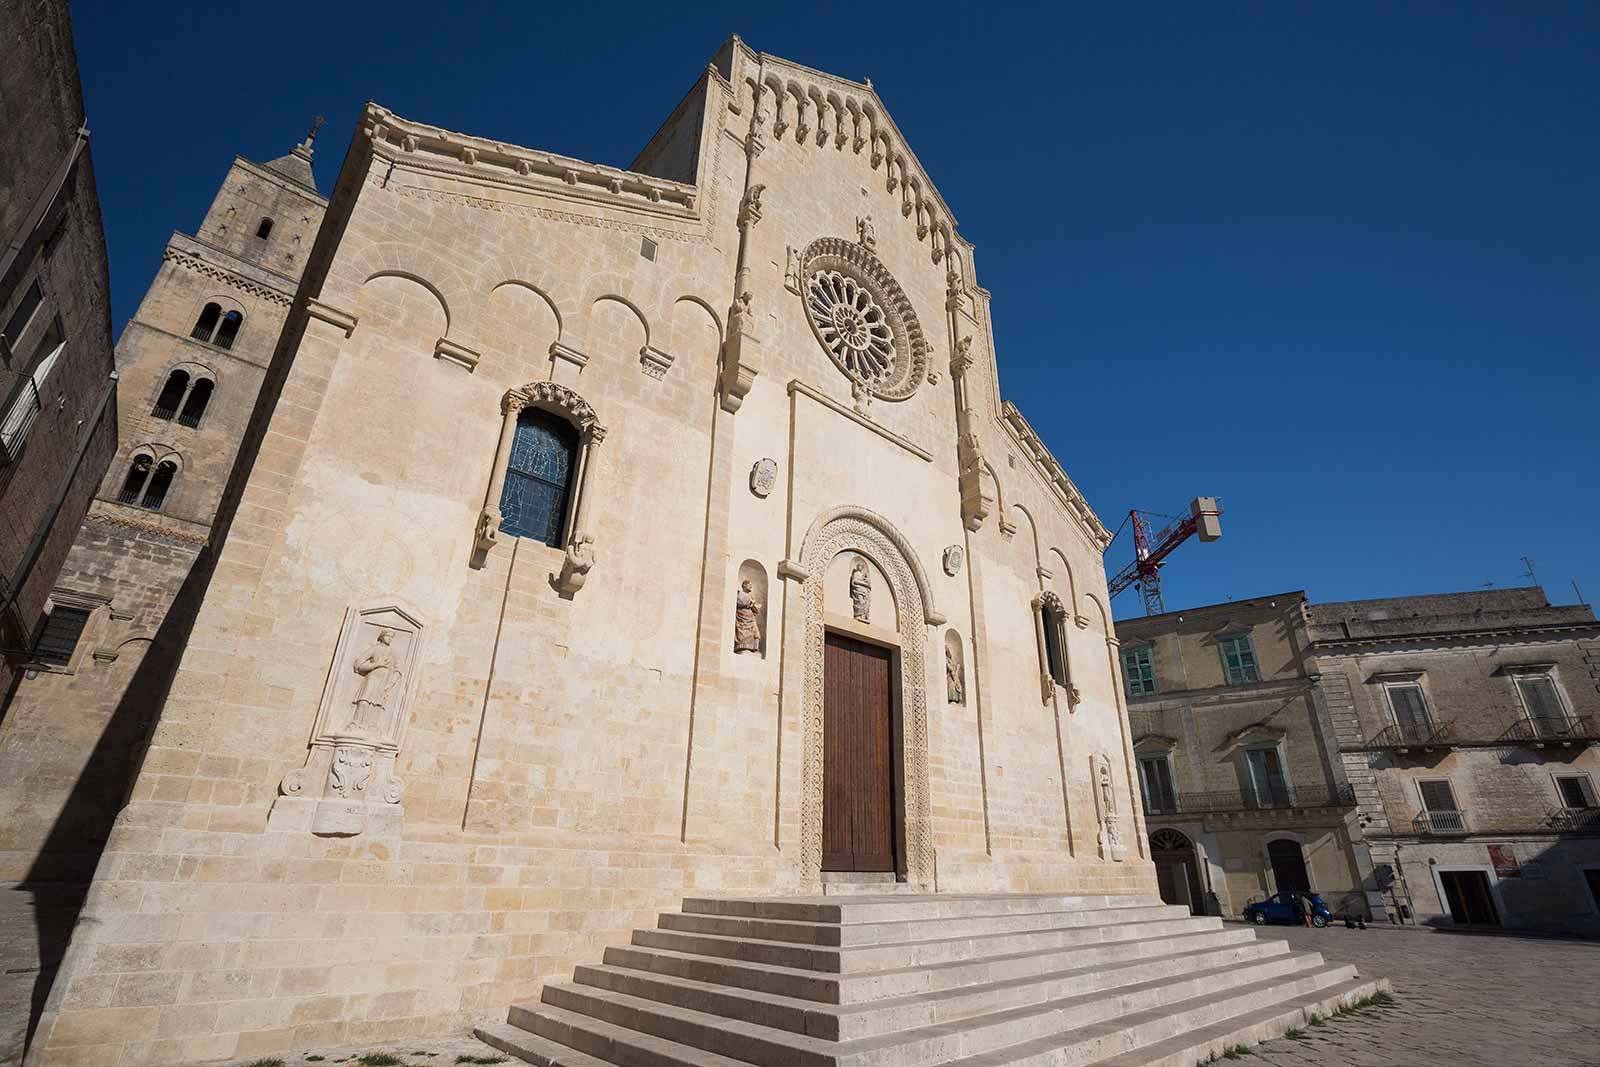 Matera Cathedral is located on the highest point of Sassi di Matera and it's tower is the landmark of the city.